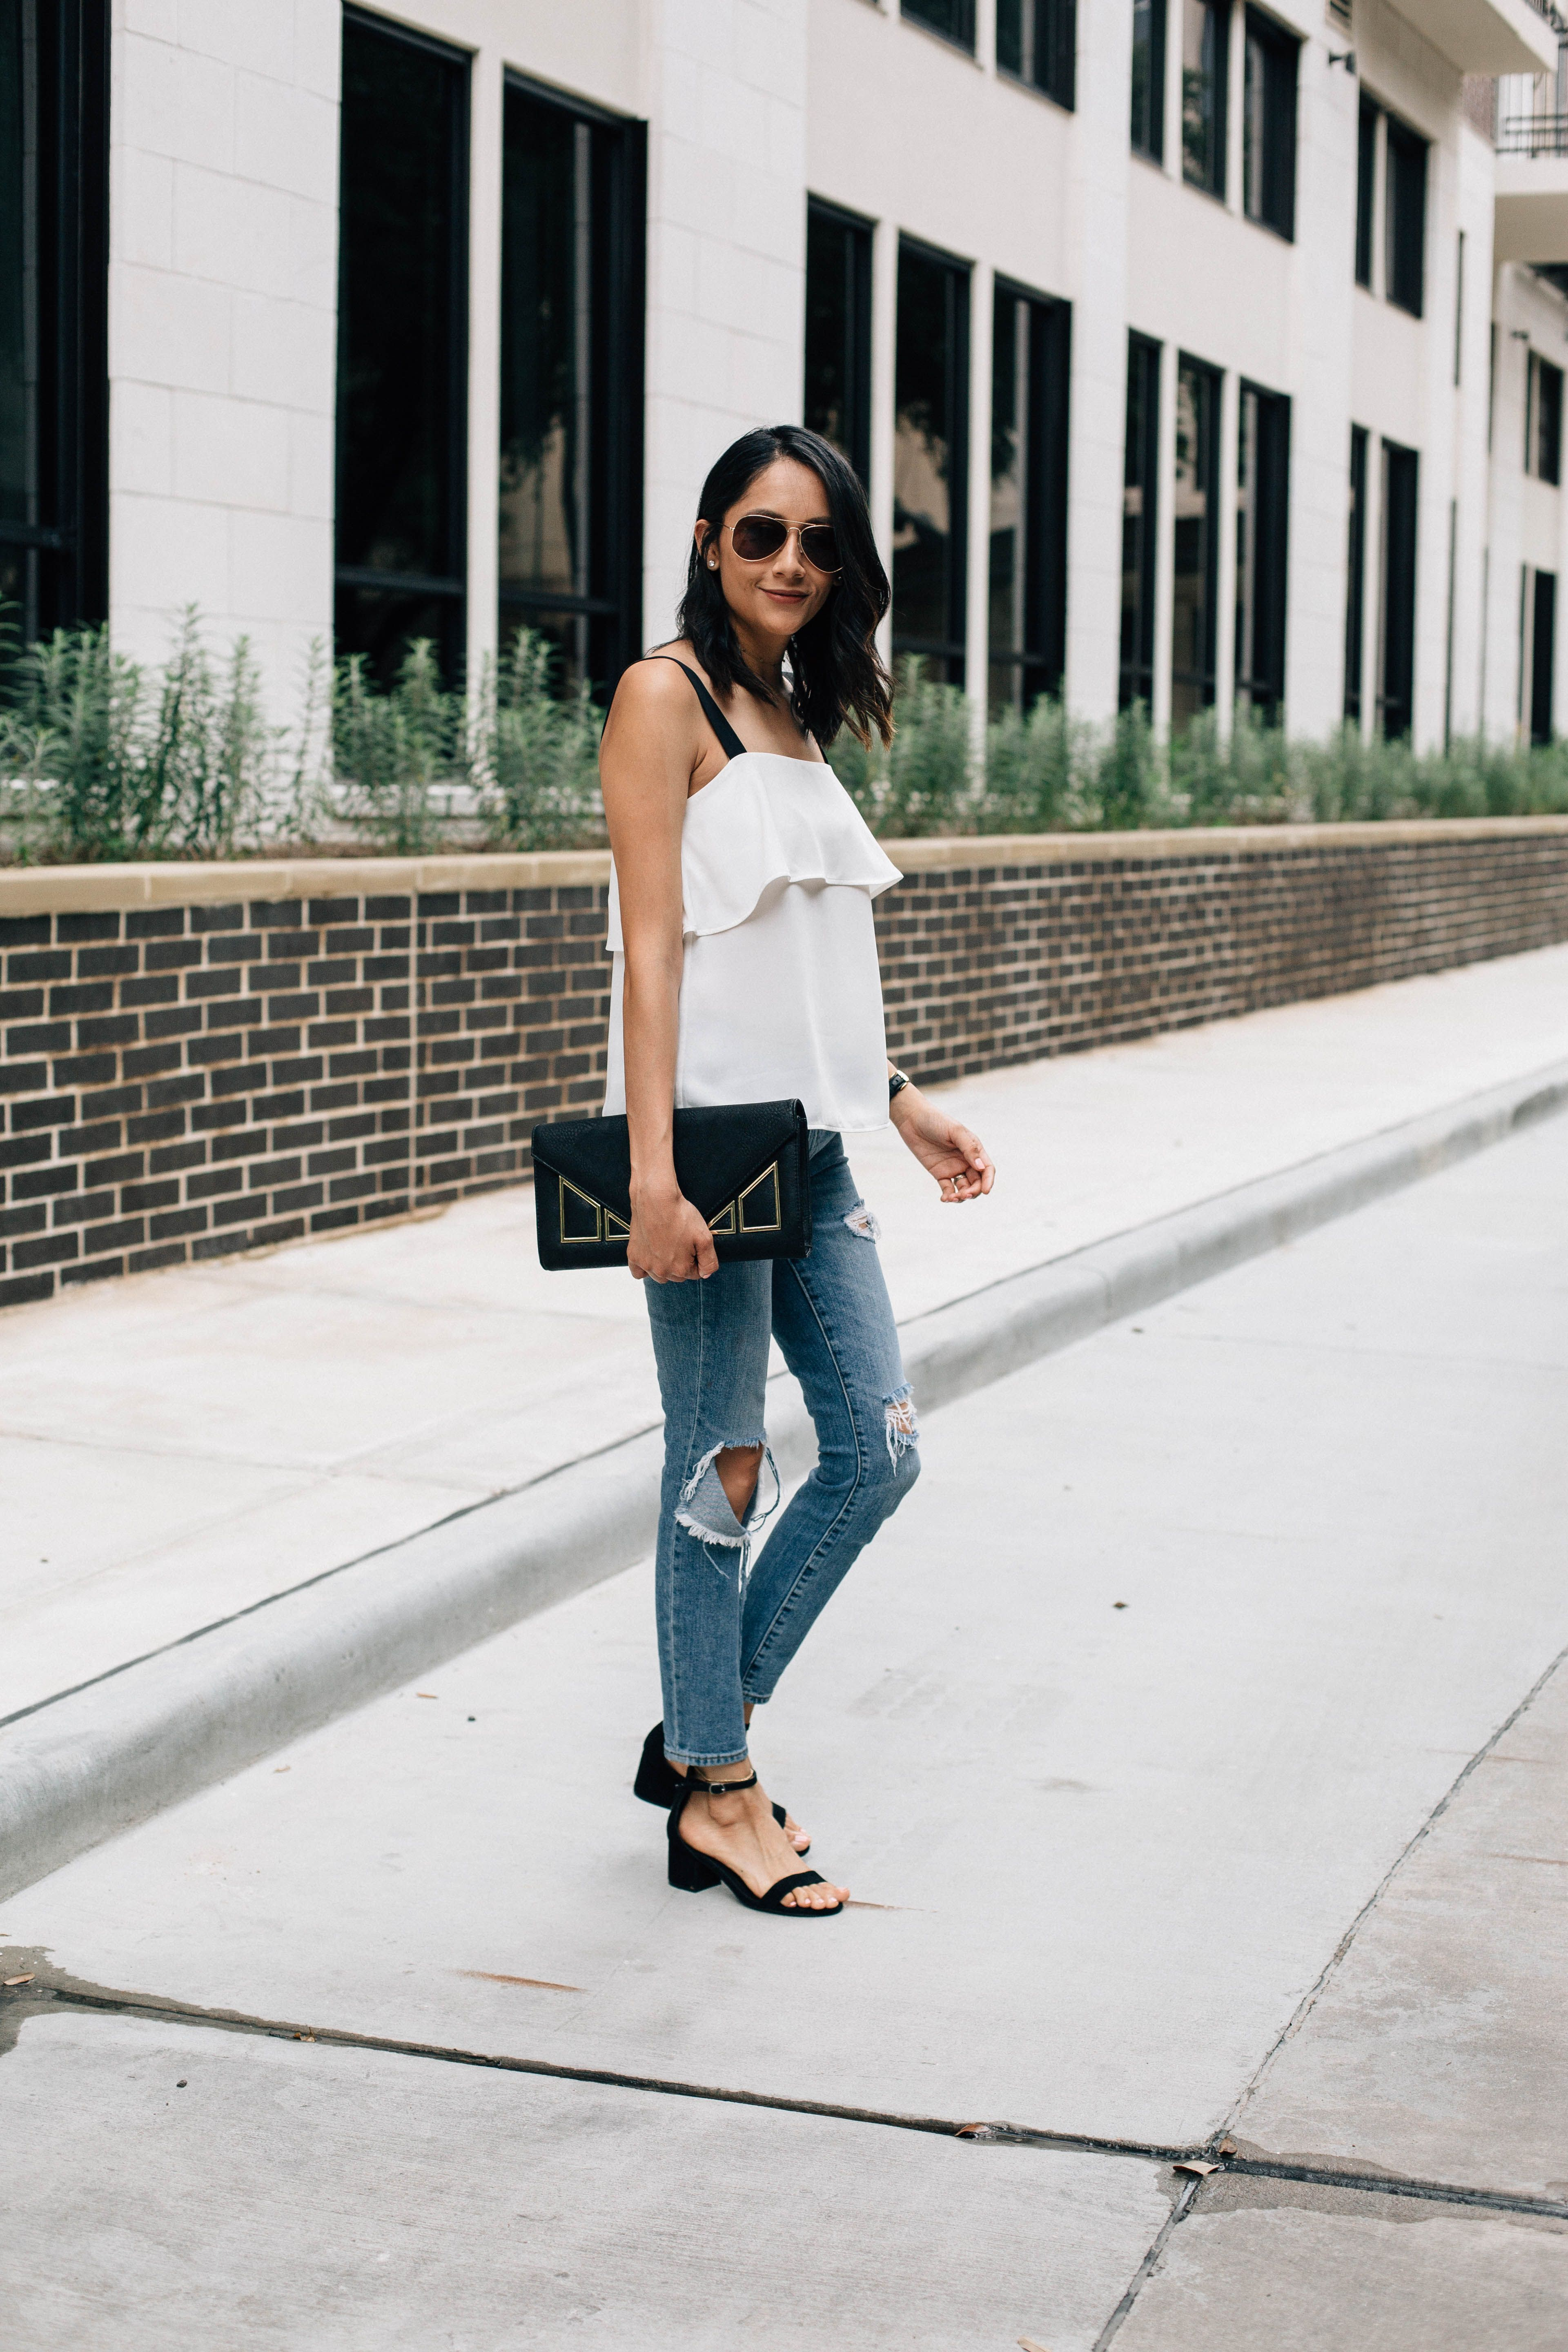 c63e8ab503124 Summer outfit idea. Tiered top